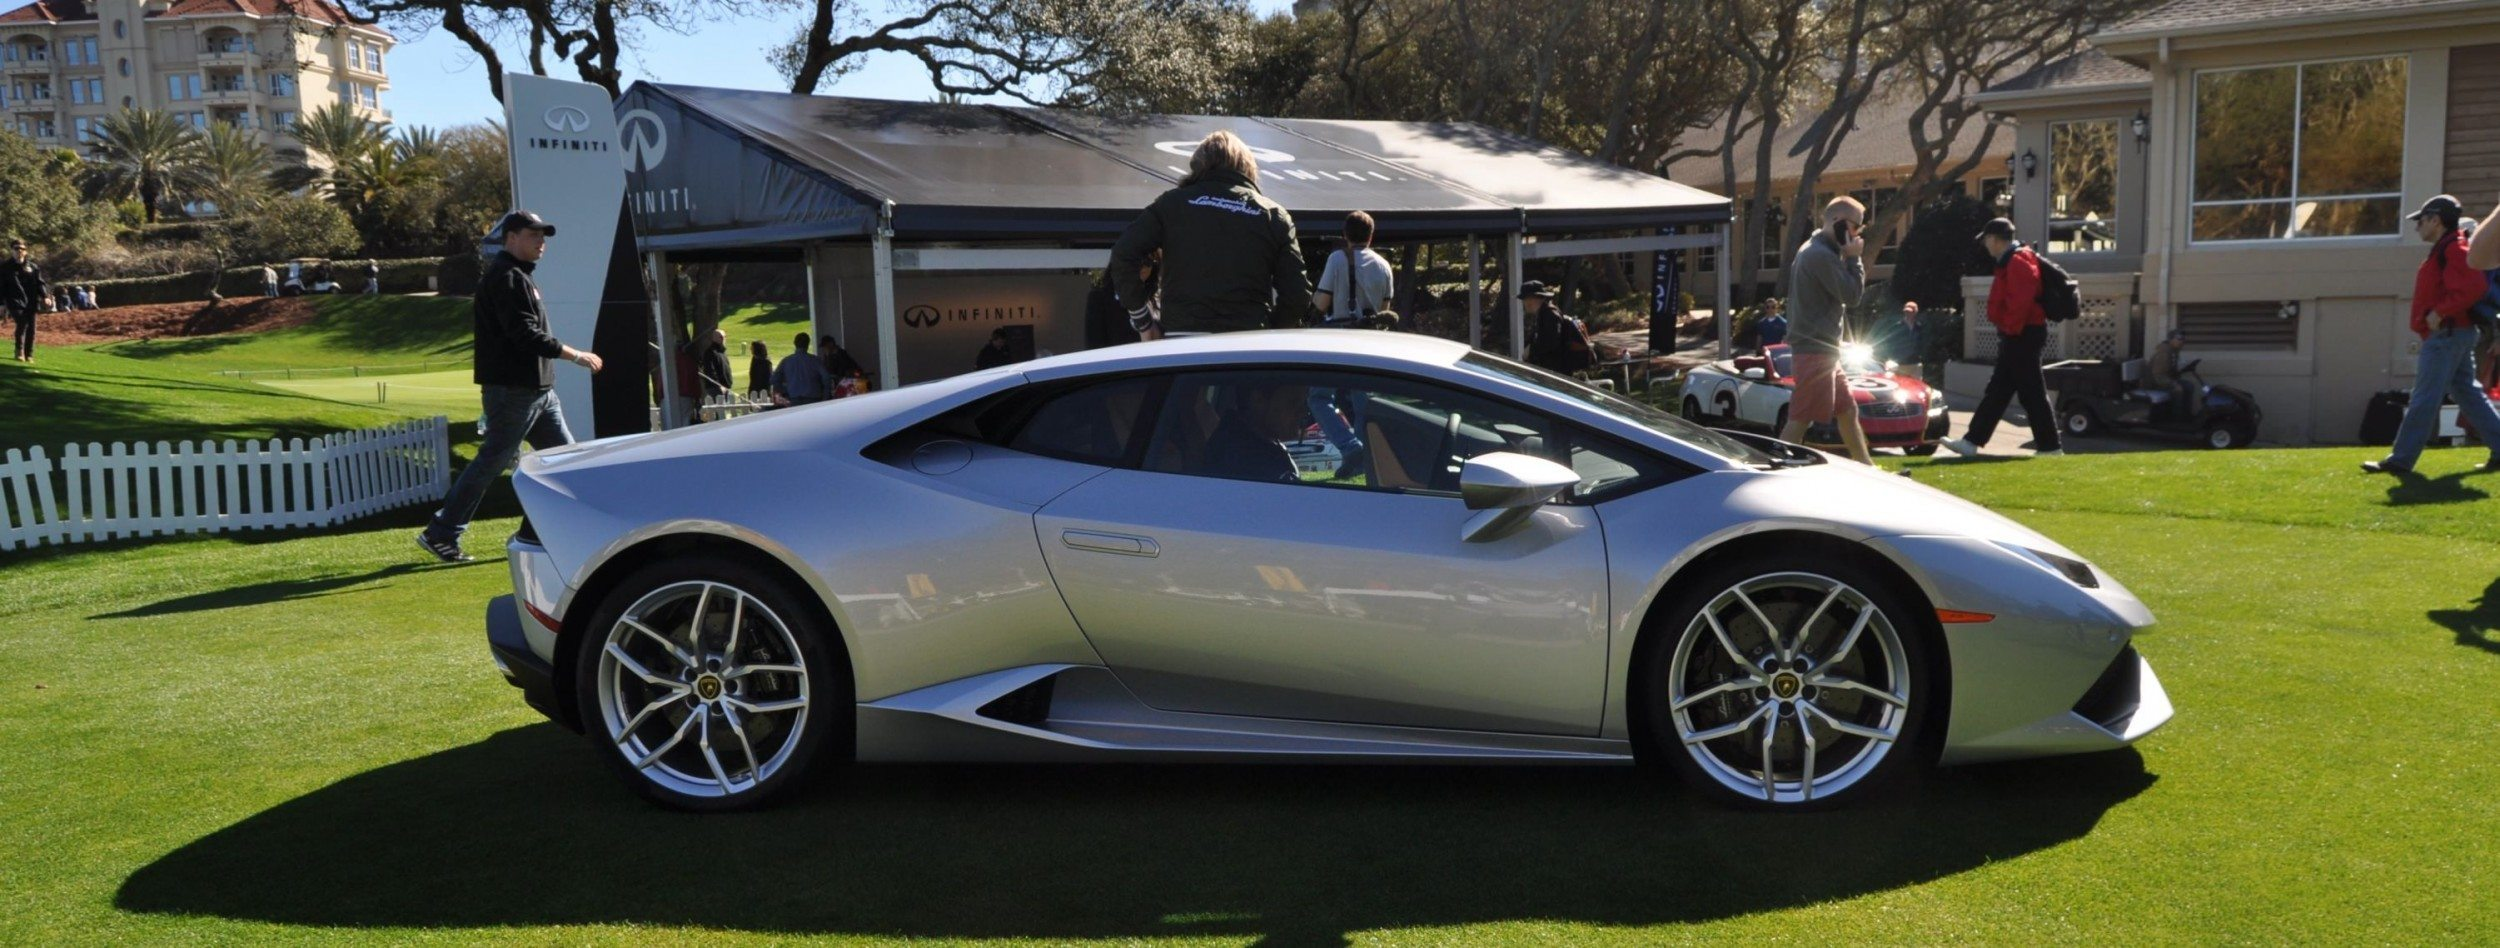 2015 Lamborghini Huracan -- First Outdoor Display in America 1